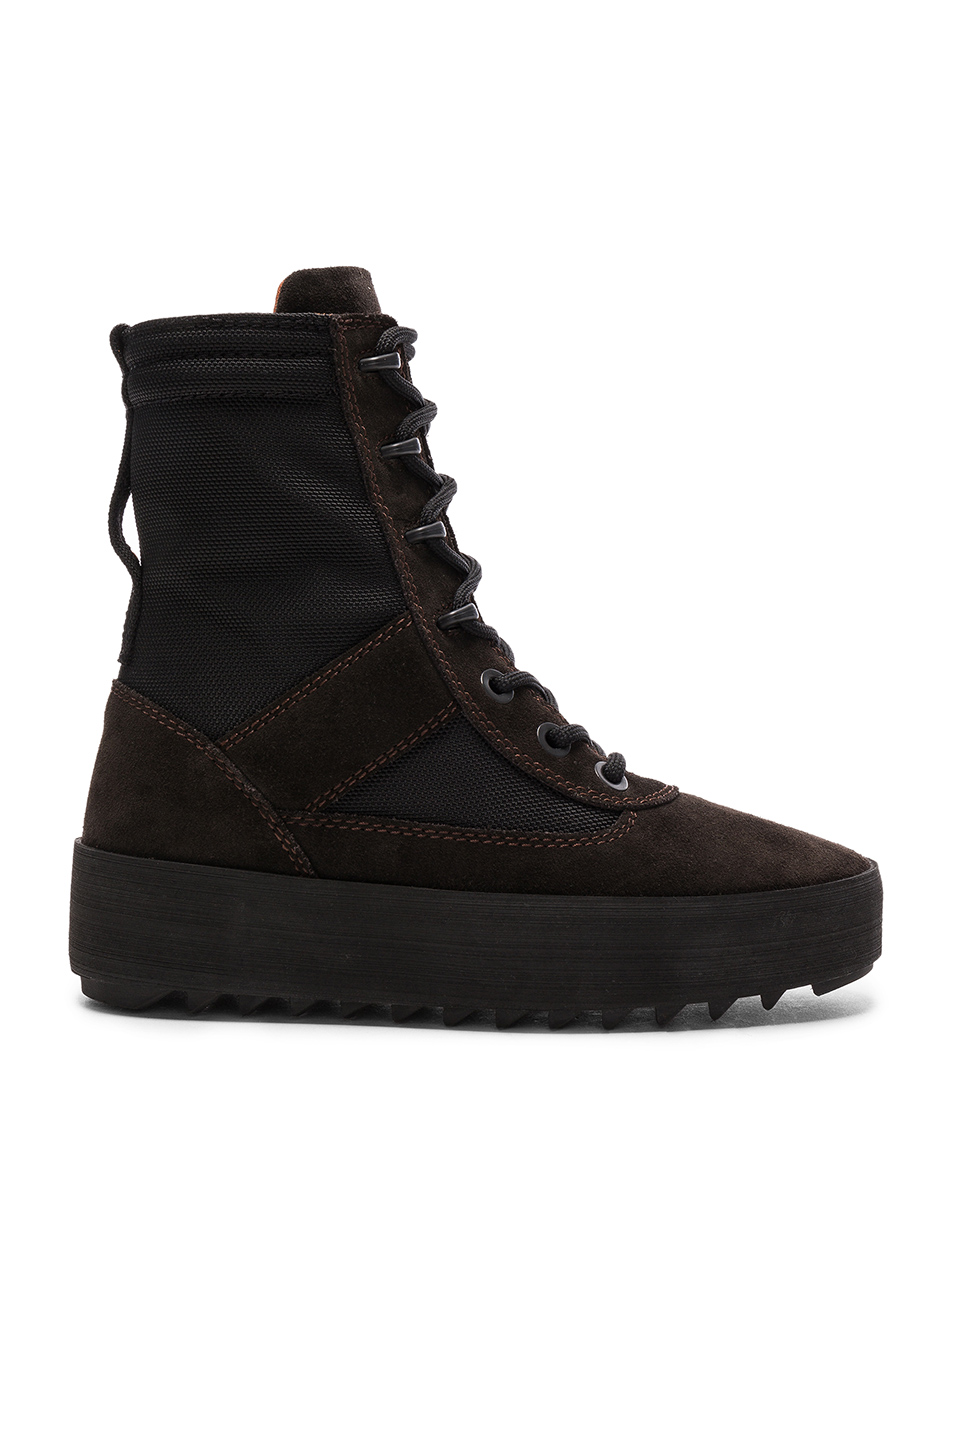 YEEZY Season 3 Suede Military Boots in Black